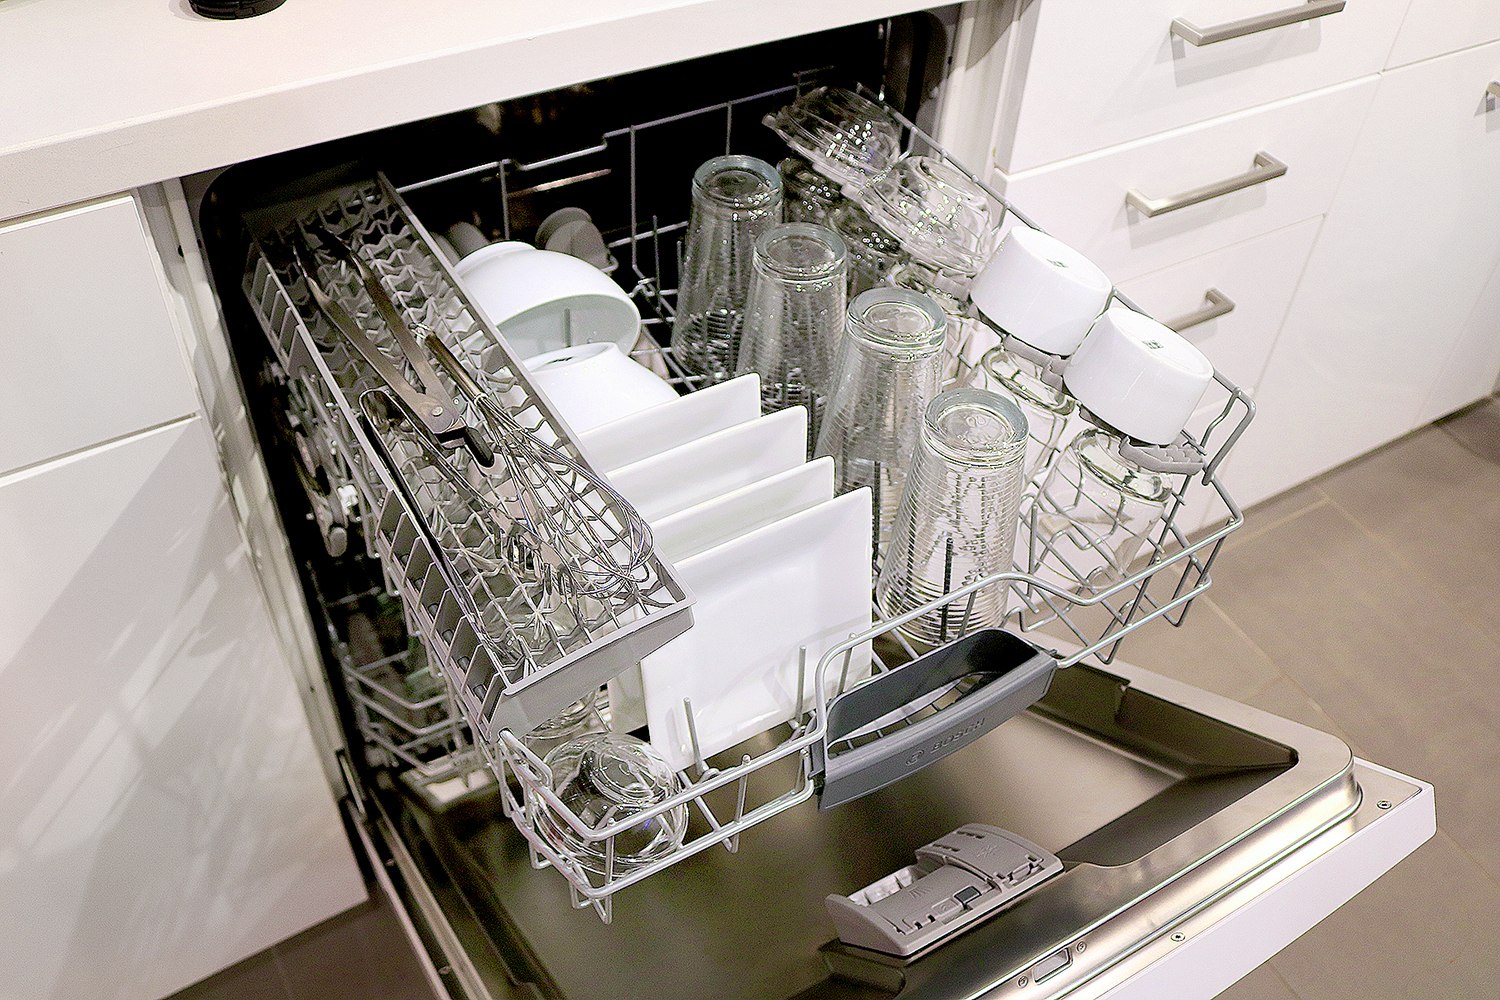 BOSCH 100 dishwasher